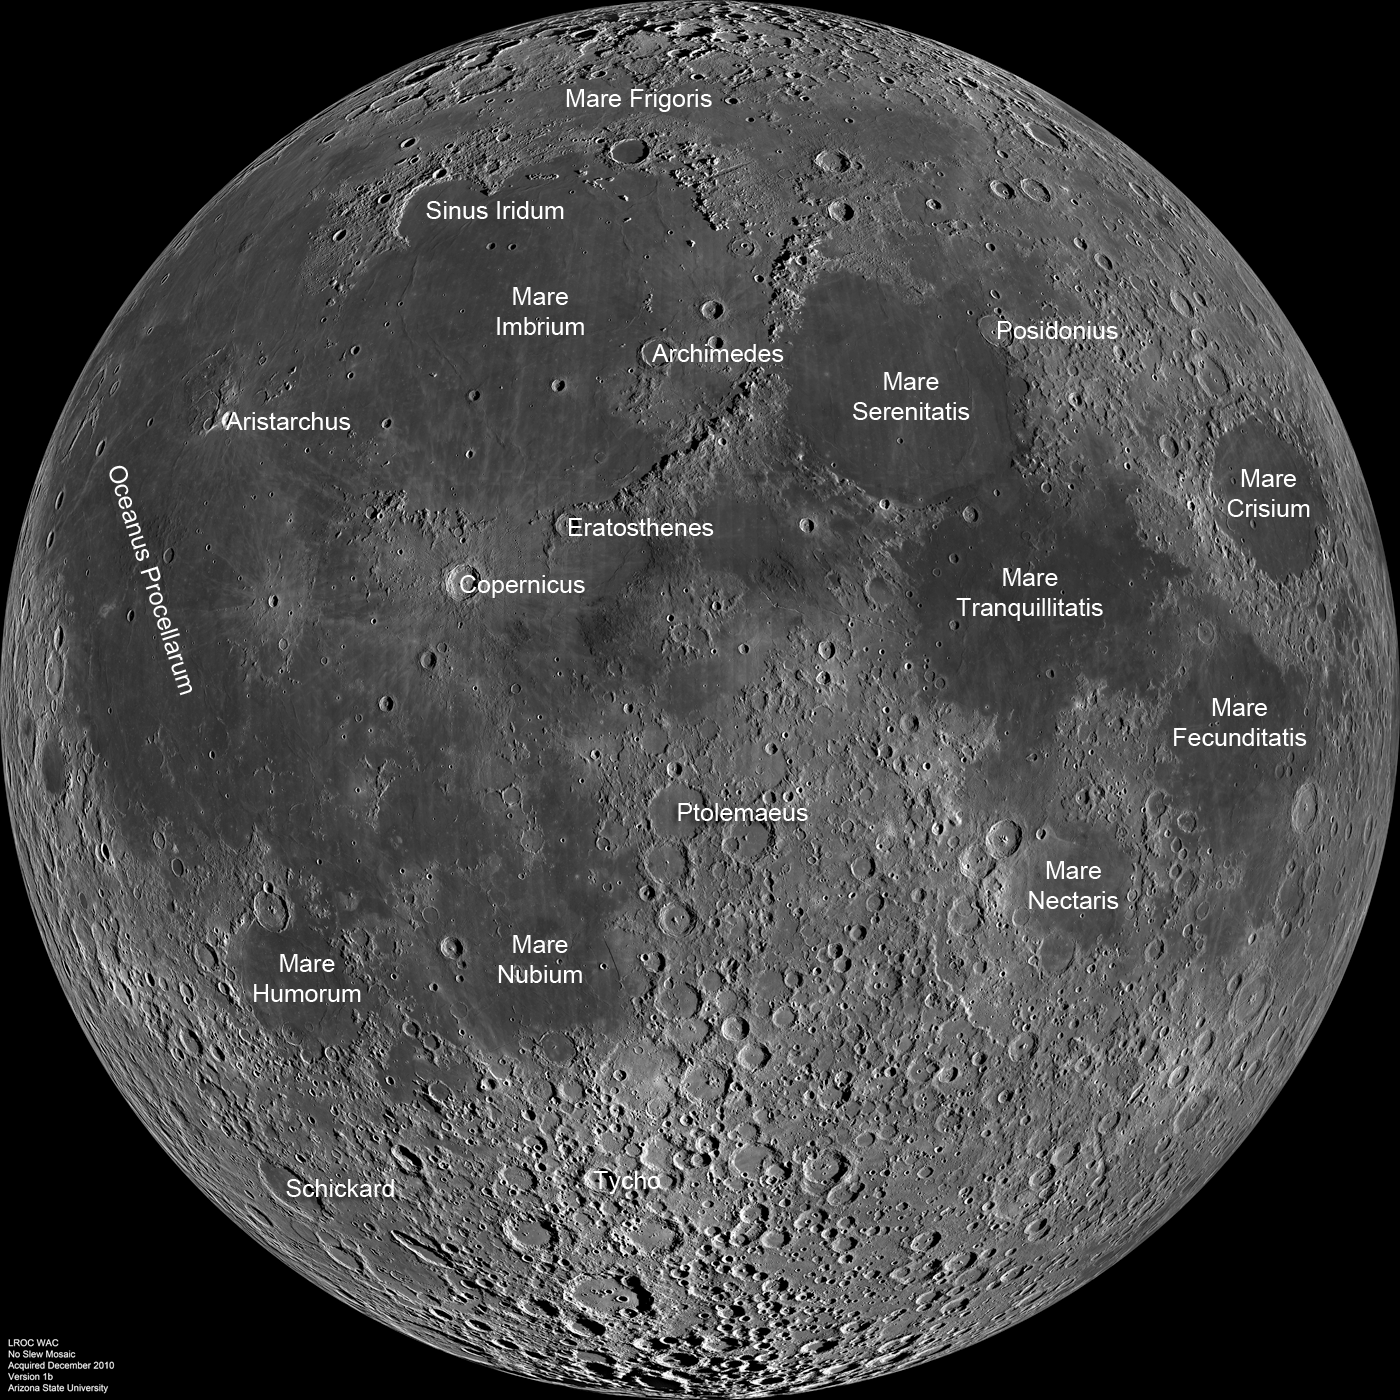 Moon, nearside, with named major areas. Source:http://scienceblogs.com/startswithabang/files/2011/03/lroc_wac_nearside_noslew_anot.png